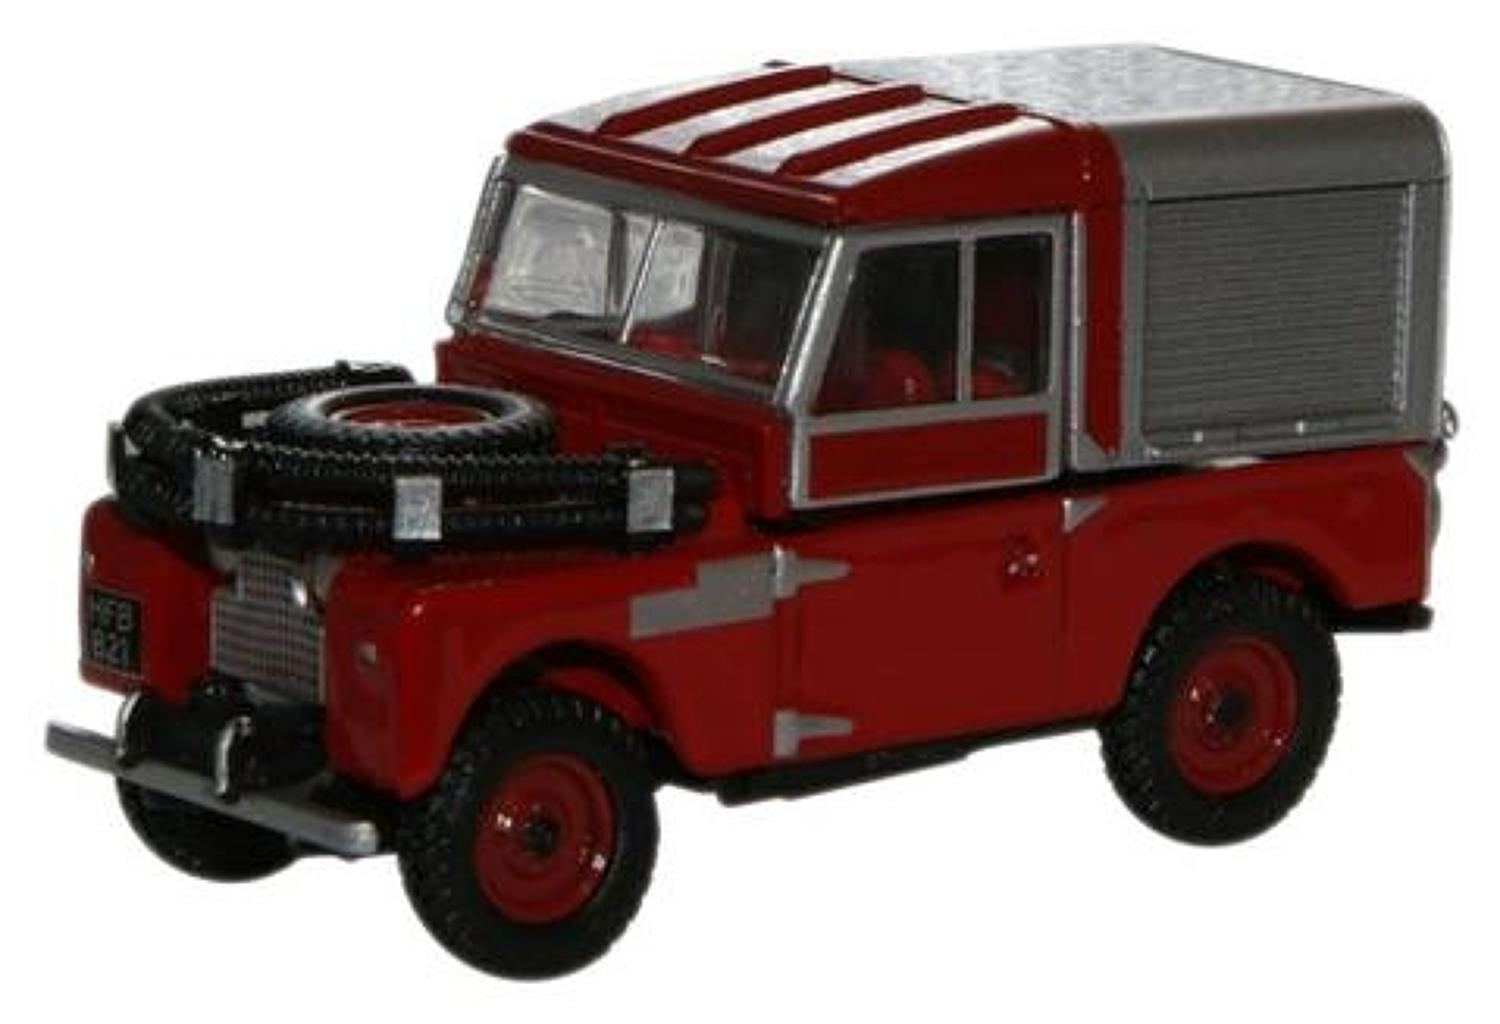 Red Land Rover 88 Fire